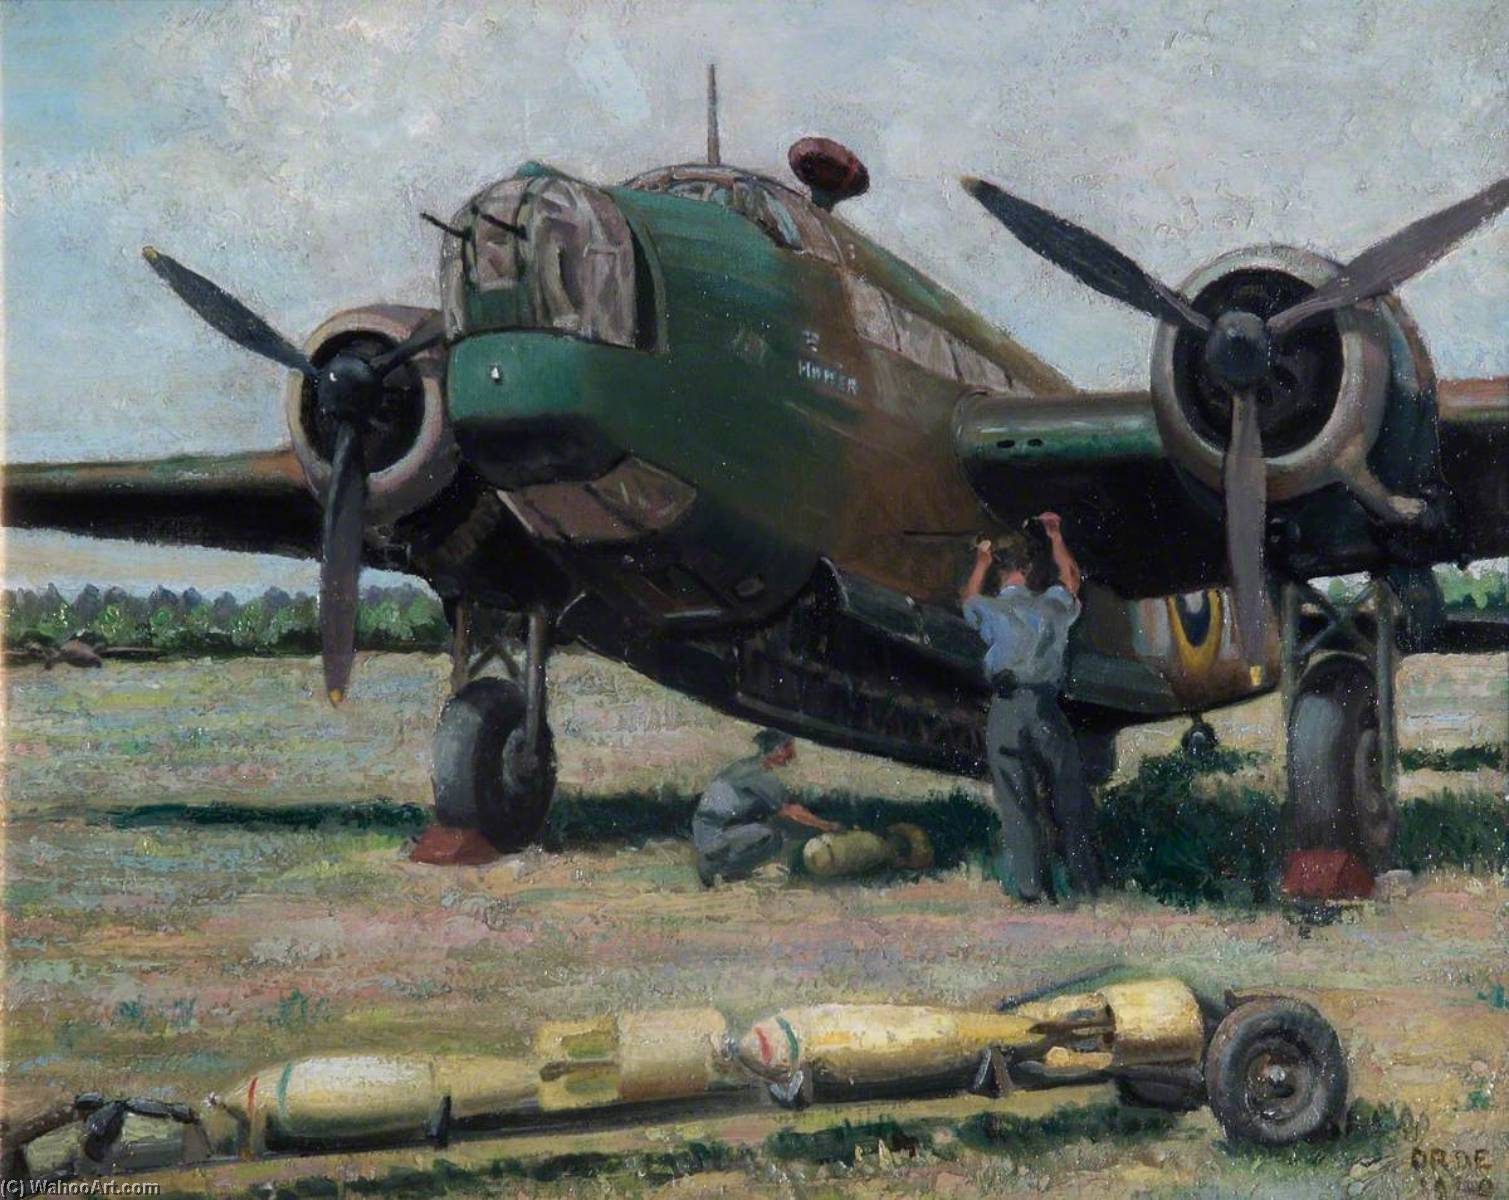 Bombing up a Wellington, Oil On Canvas by Cuthbert Julian Orde